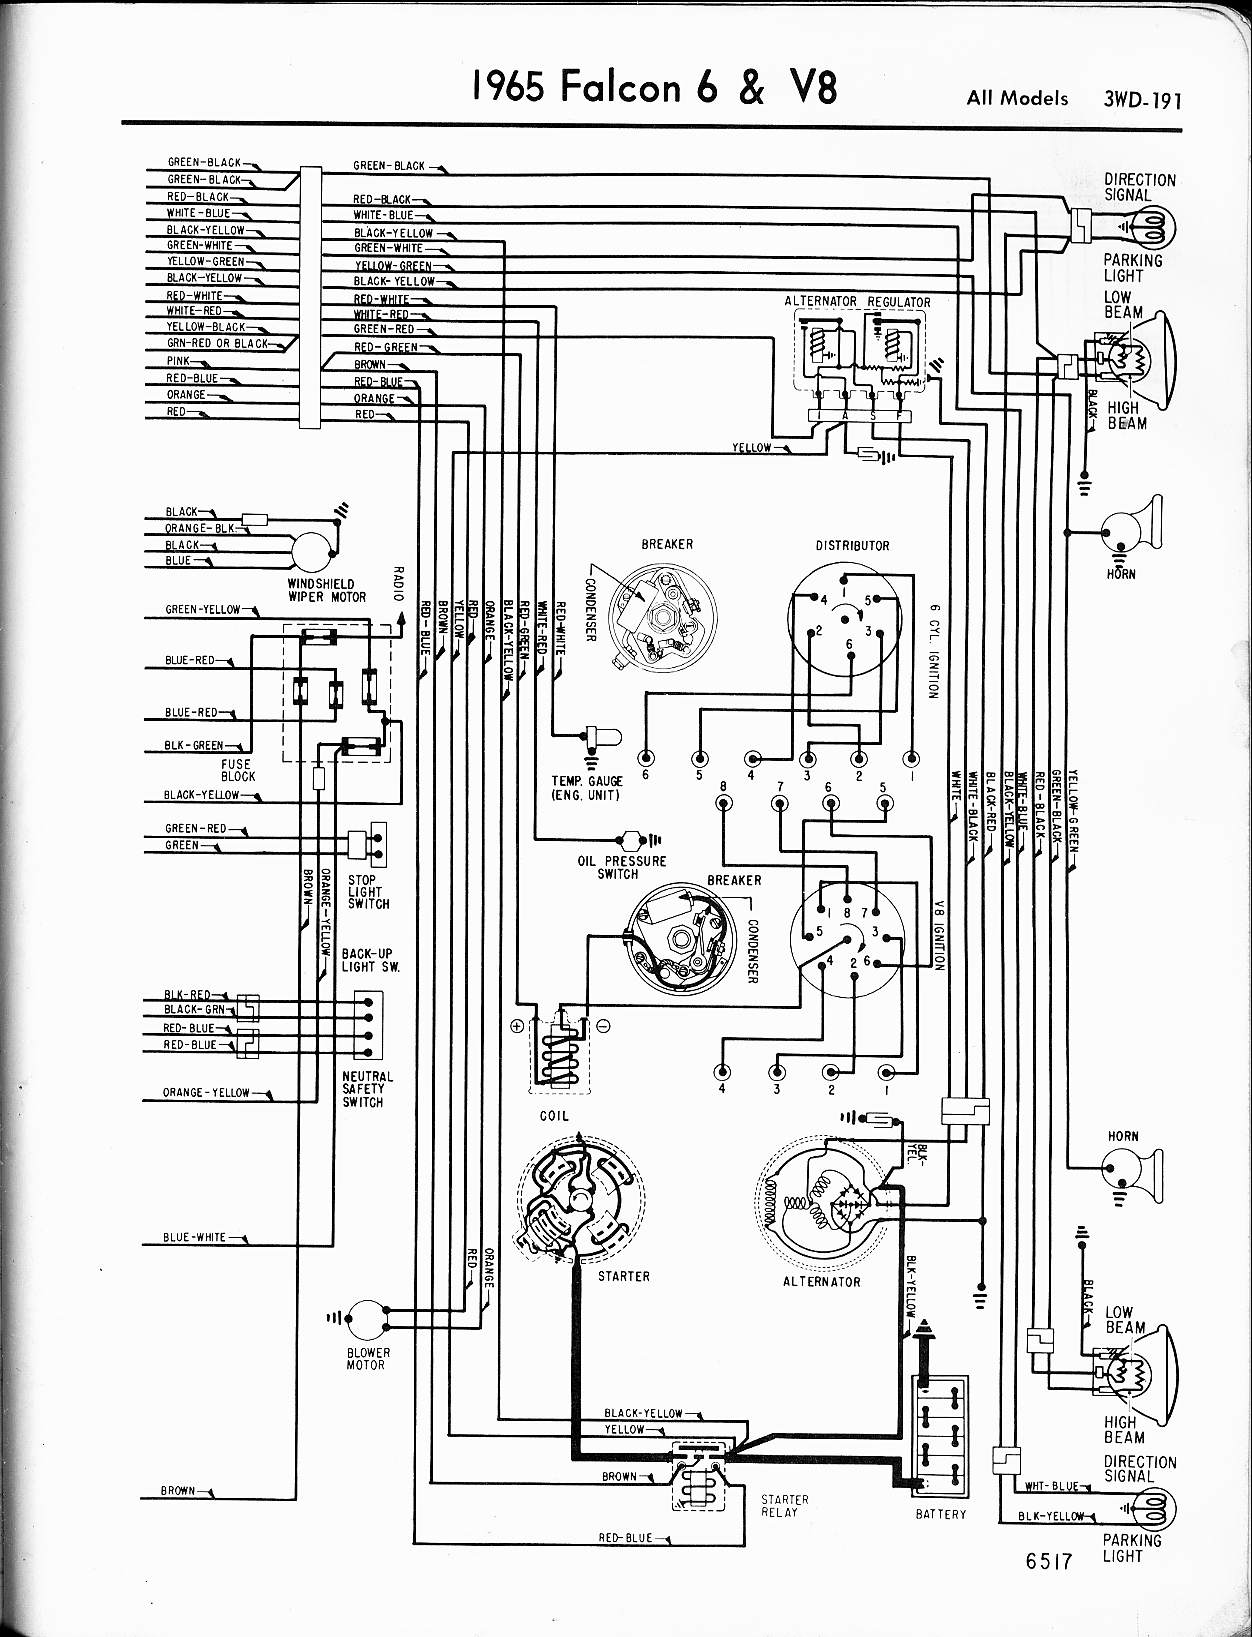 MWire5765 191 57 65 ford wiring diagrams ford falcon wiring diagram at gsmx.co